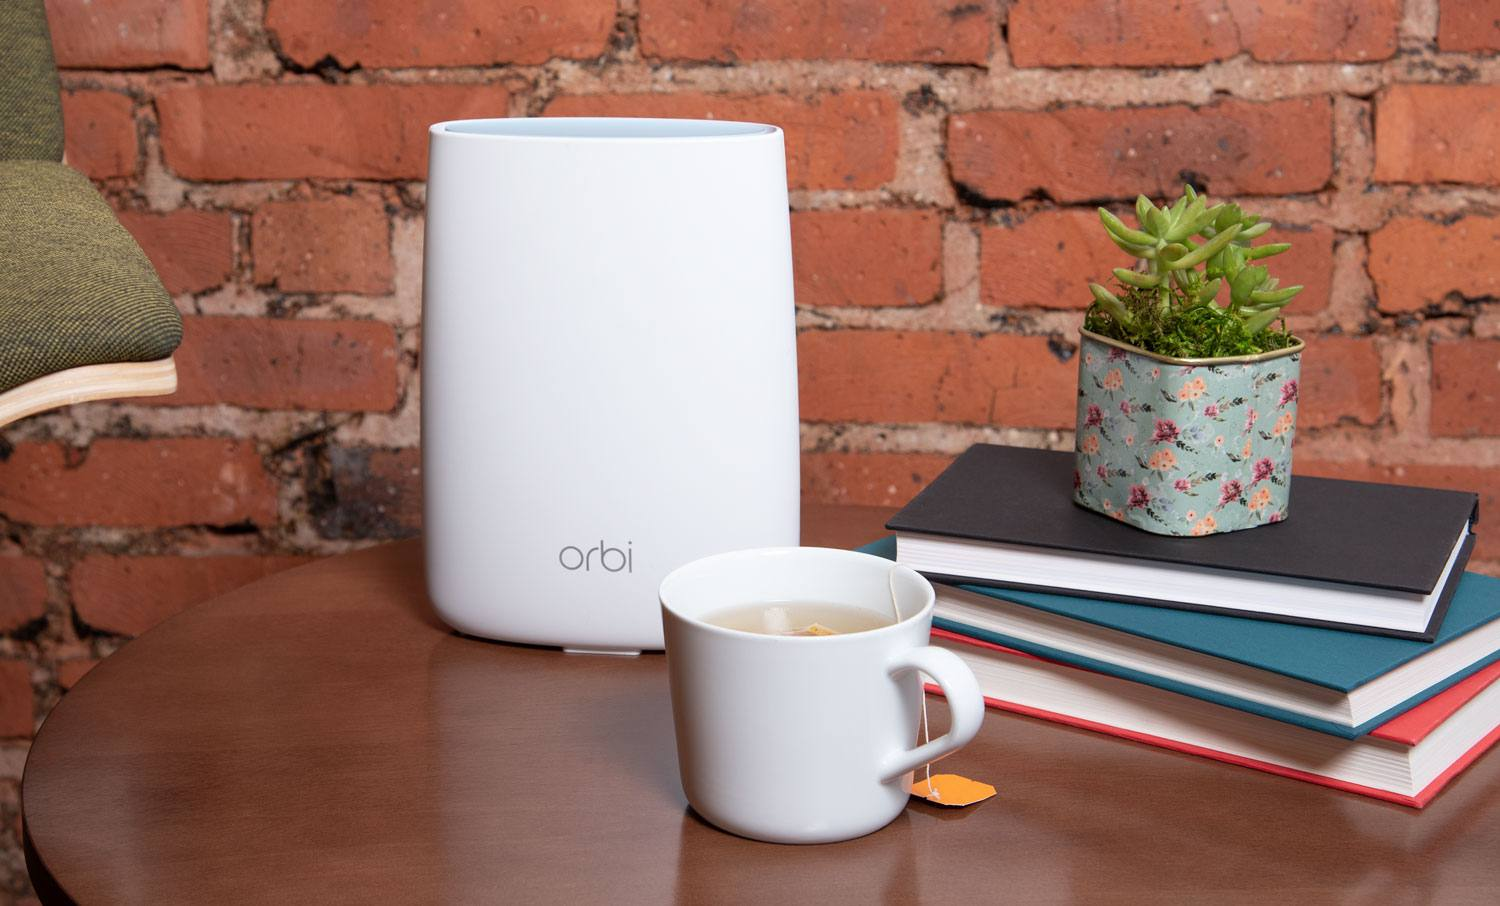 Netgear Orbi Review: The Best Mesh Router You Can Buy Today